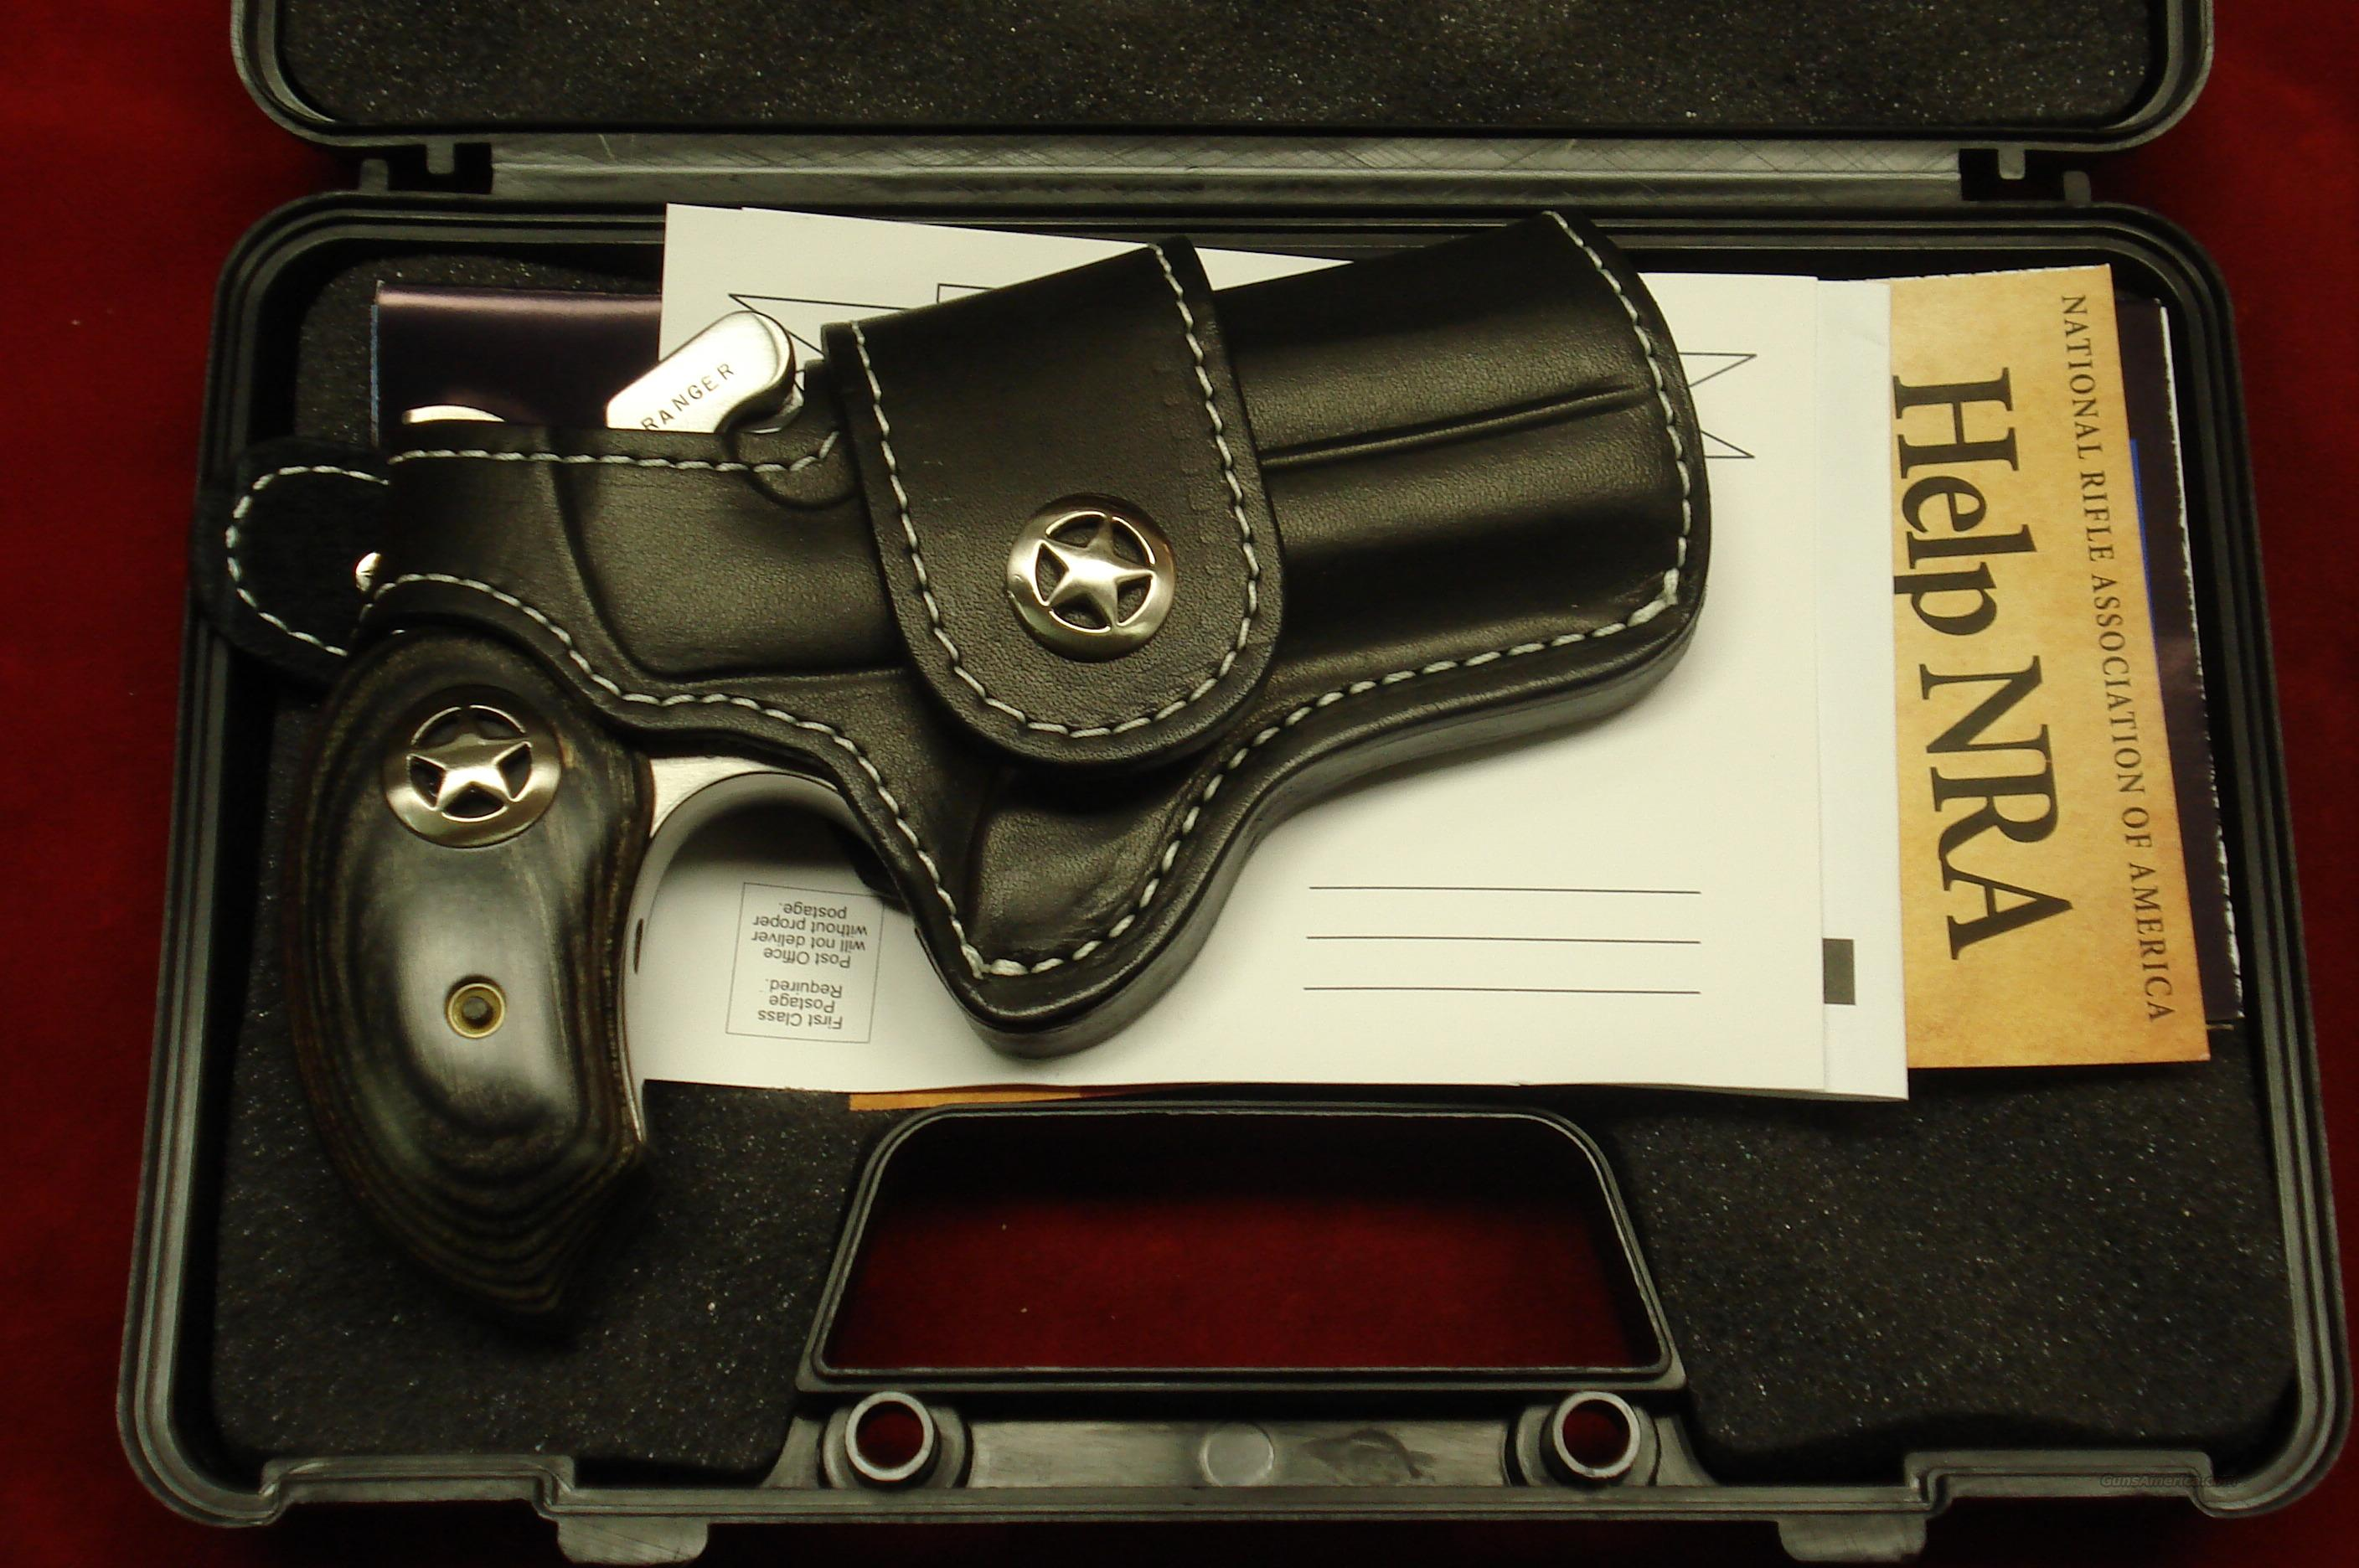 BOND ARMS RANGER 45COLT/410G STAINLESS DERRINGER WITH HOLSTER NEW  Guns > Pistols > Bond Derringers